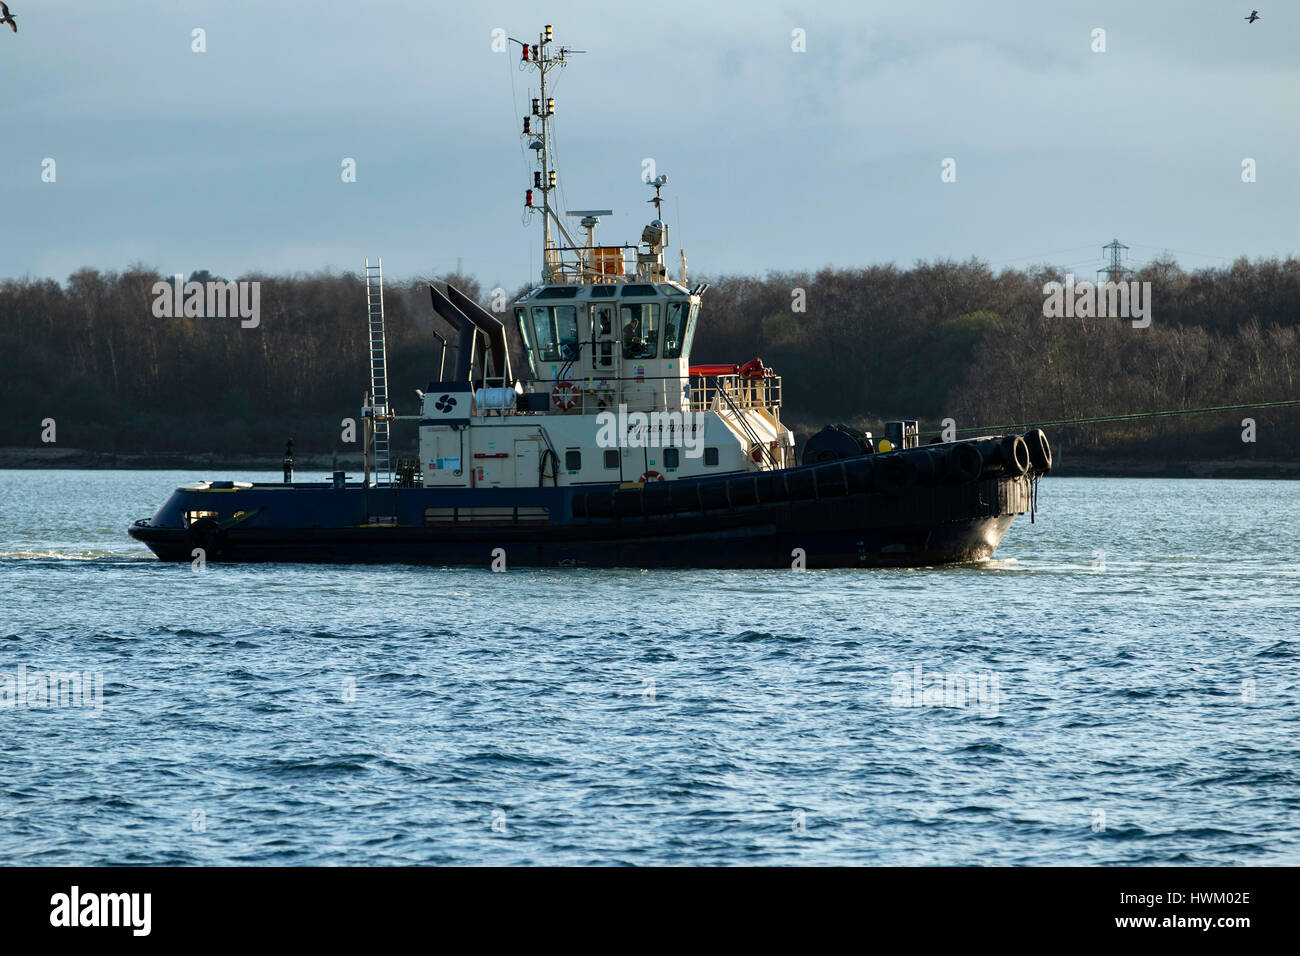 Tug boat Svitzer Ferriby attending the giant container ship CMA CGM Benjamin Franklin at Southampton, UK on 20 March - Stock Image